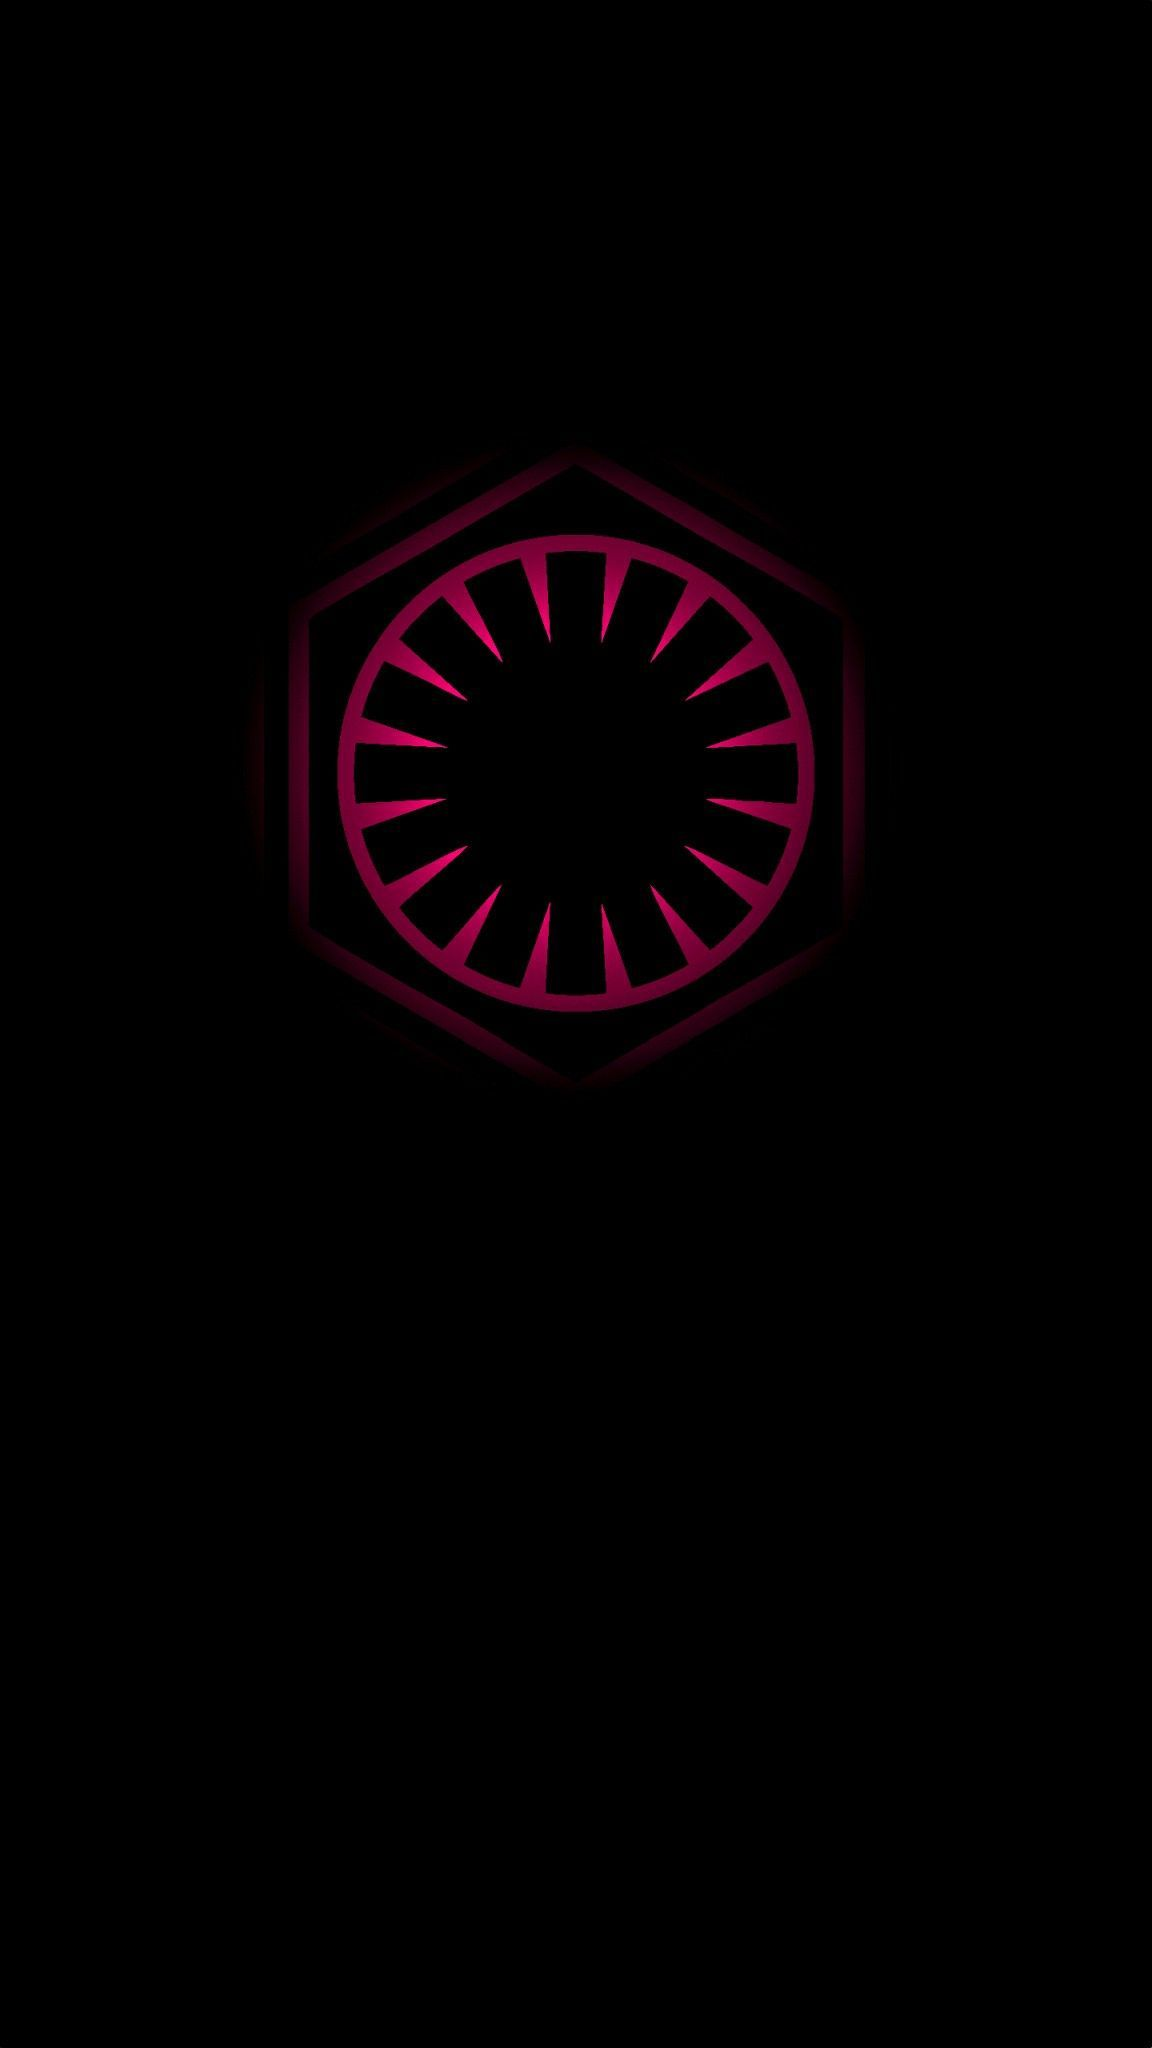 Star Wars Dark Wallpapers Top Free Star Wars Dark Backgrounds Wallpaperaccess